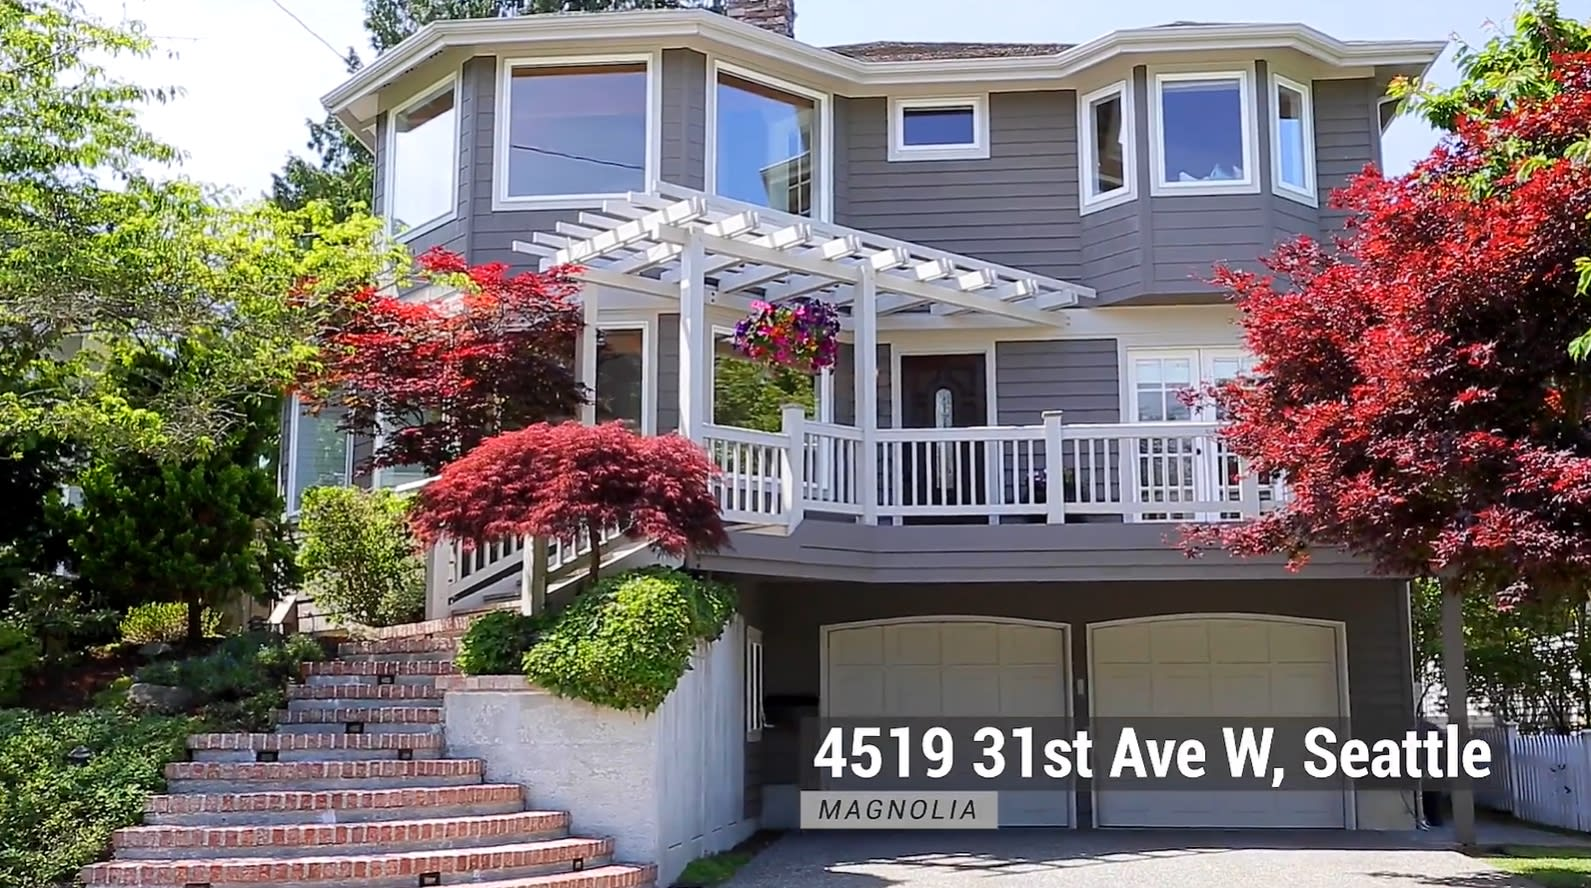 4519 31st Ave W, Seattle | Magnolia video preview